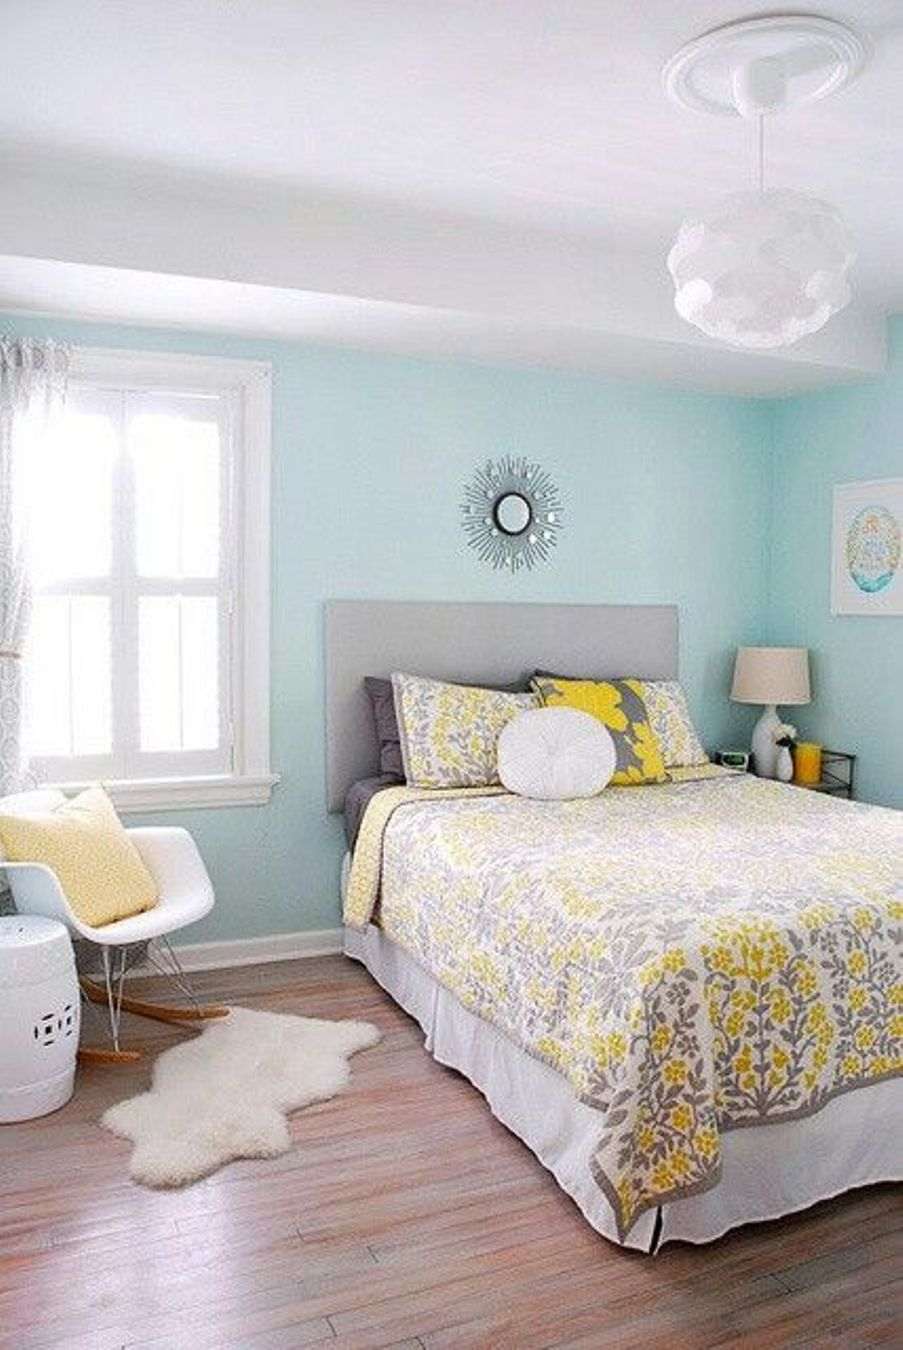 Best paint colors for small room some tips homesfeed - Interior paint ideas for small rooms ...